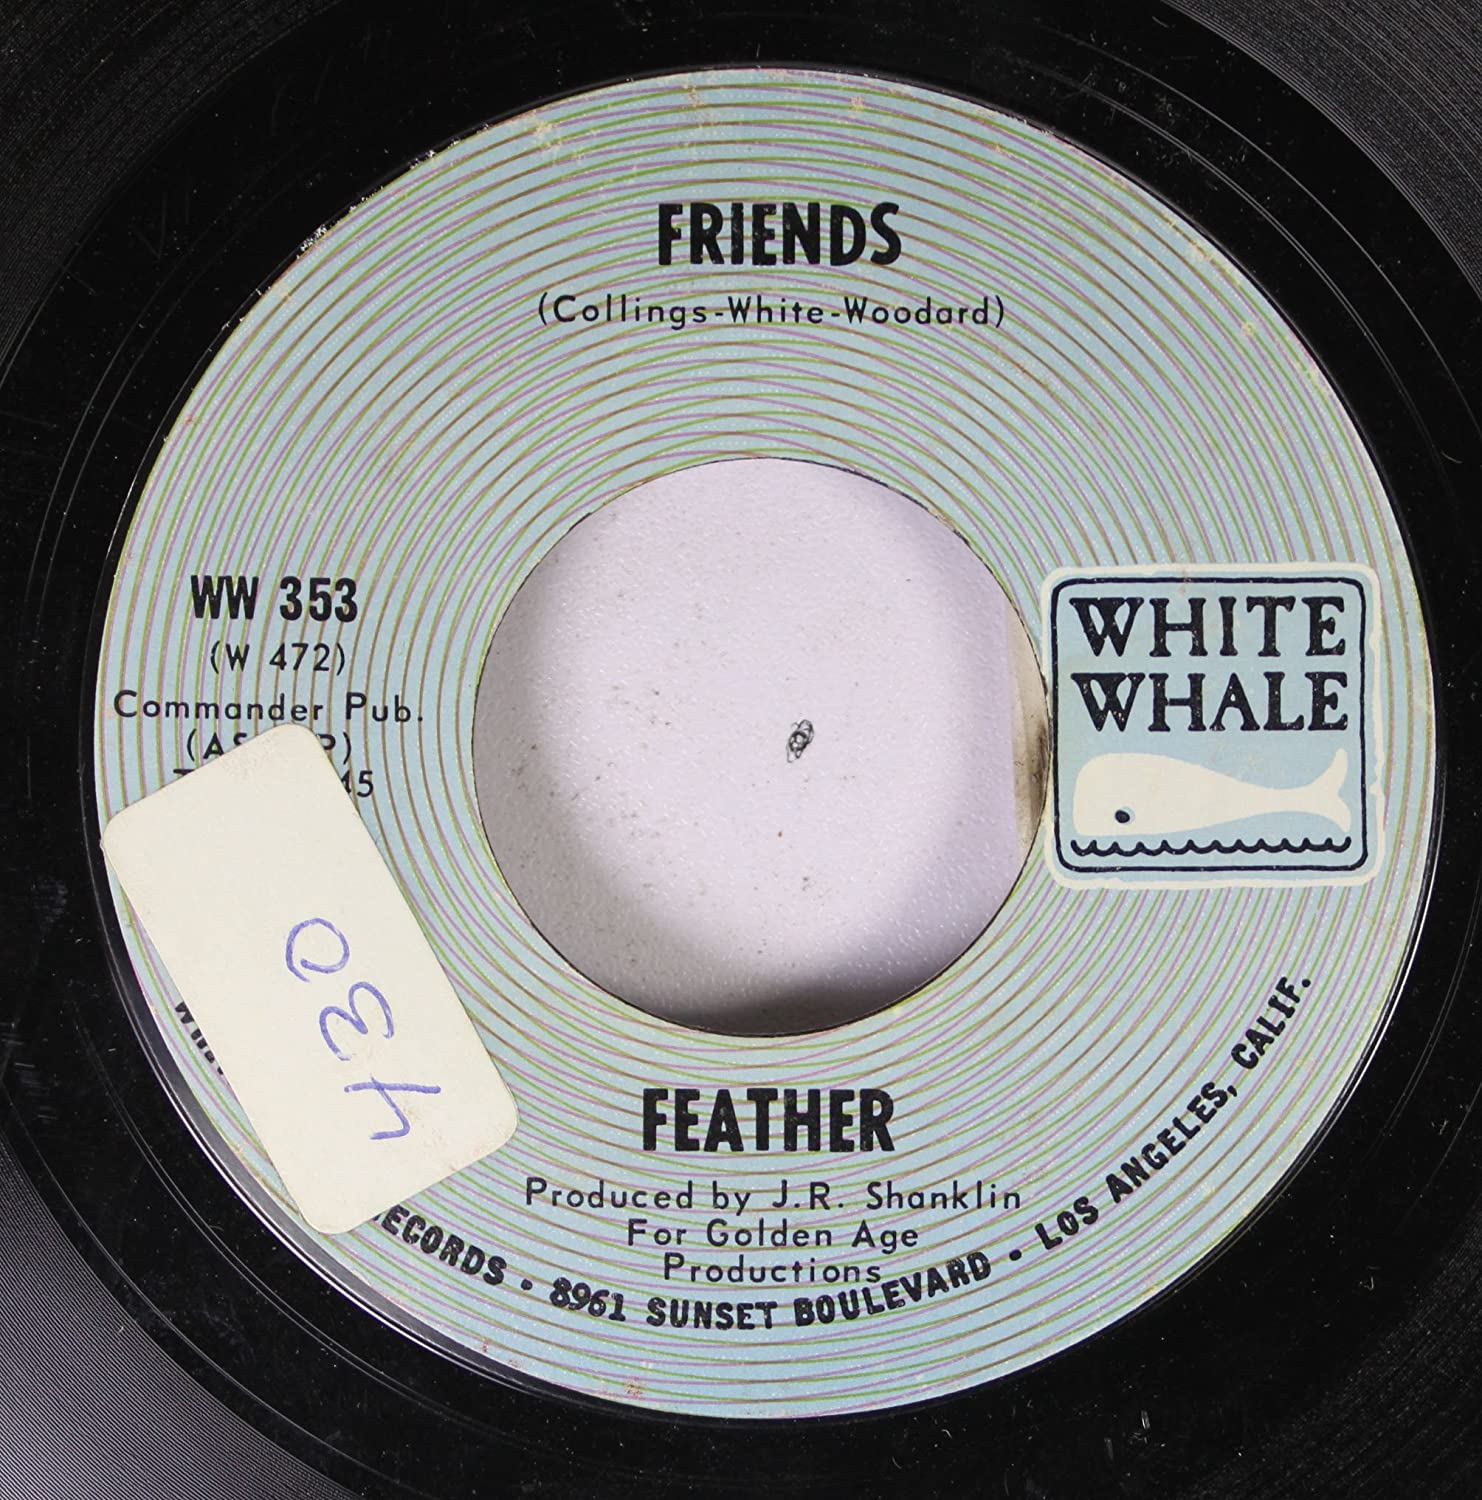 FEATHER - FEATHER 45 RPM Friends / Salli - Amazon.com Music